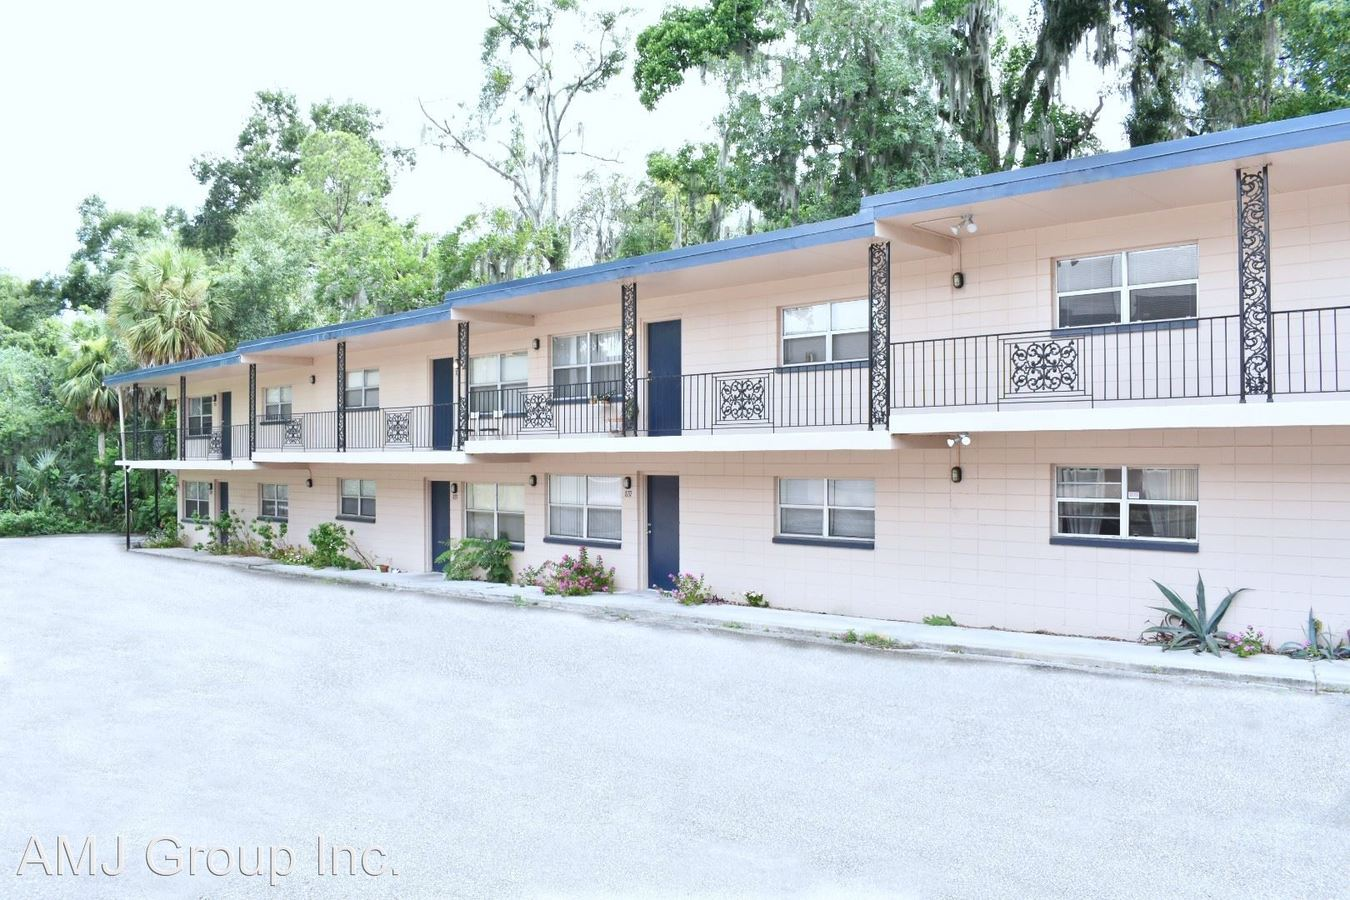 2 Bedrooms 1 Bathroom Apartment for rent at Sw 5th Avenue in Gainesville, FL